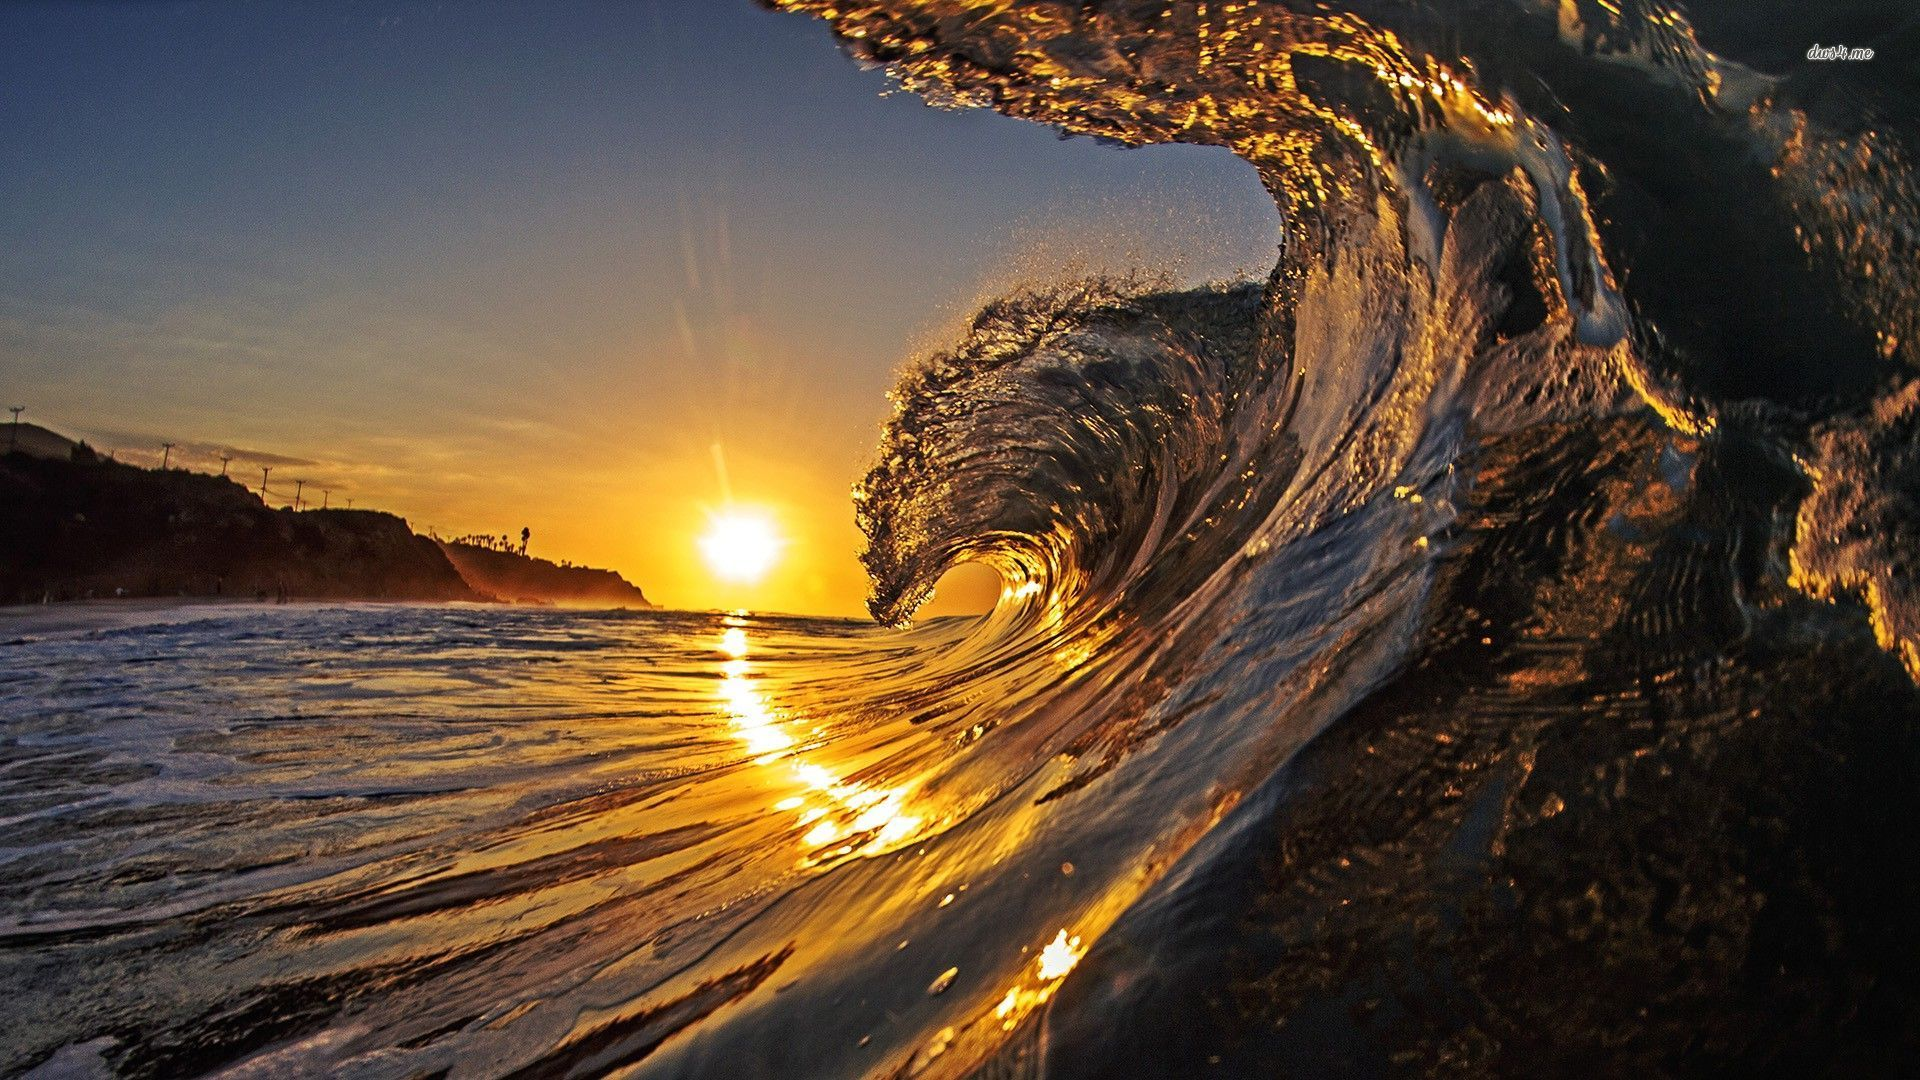 Wave in the sunset wallpaper   Beach wallpapers   17700 1920x1080